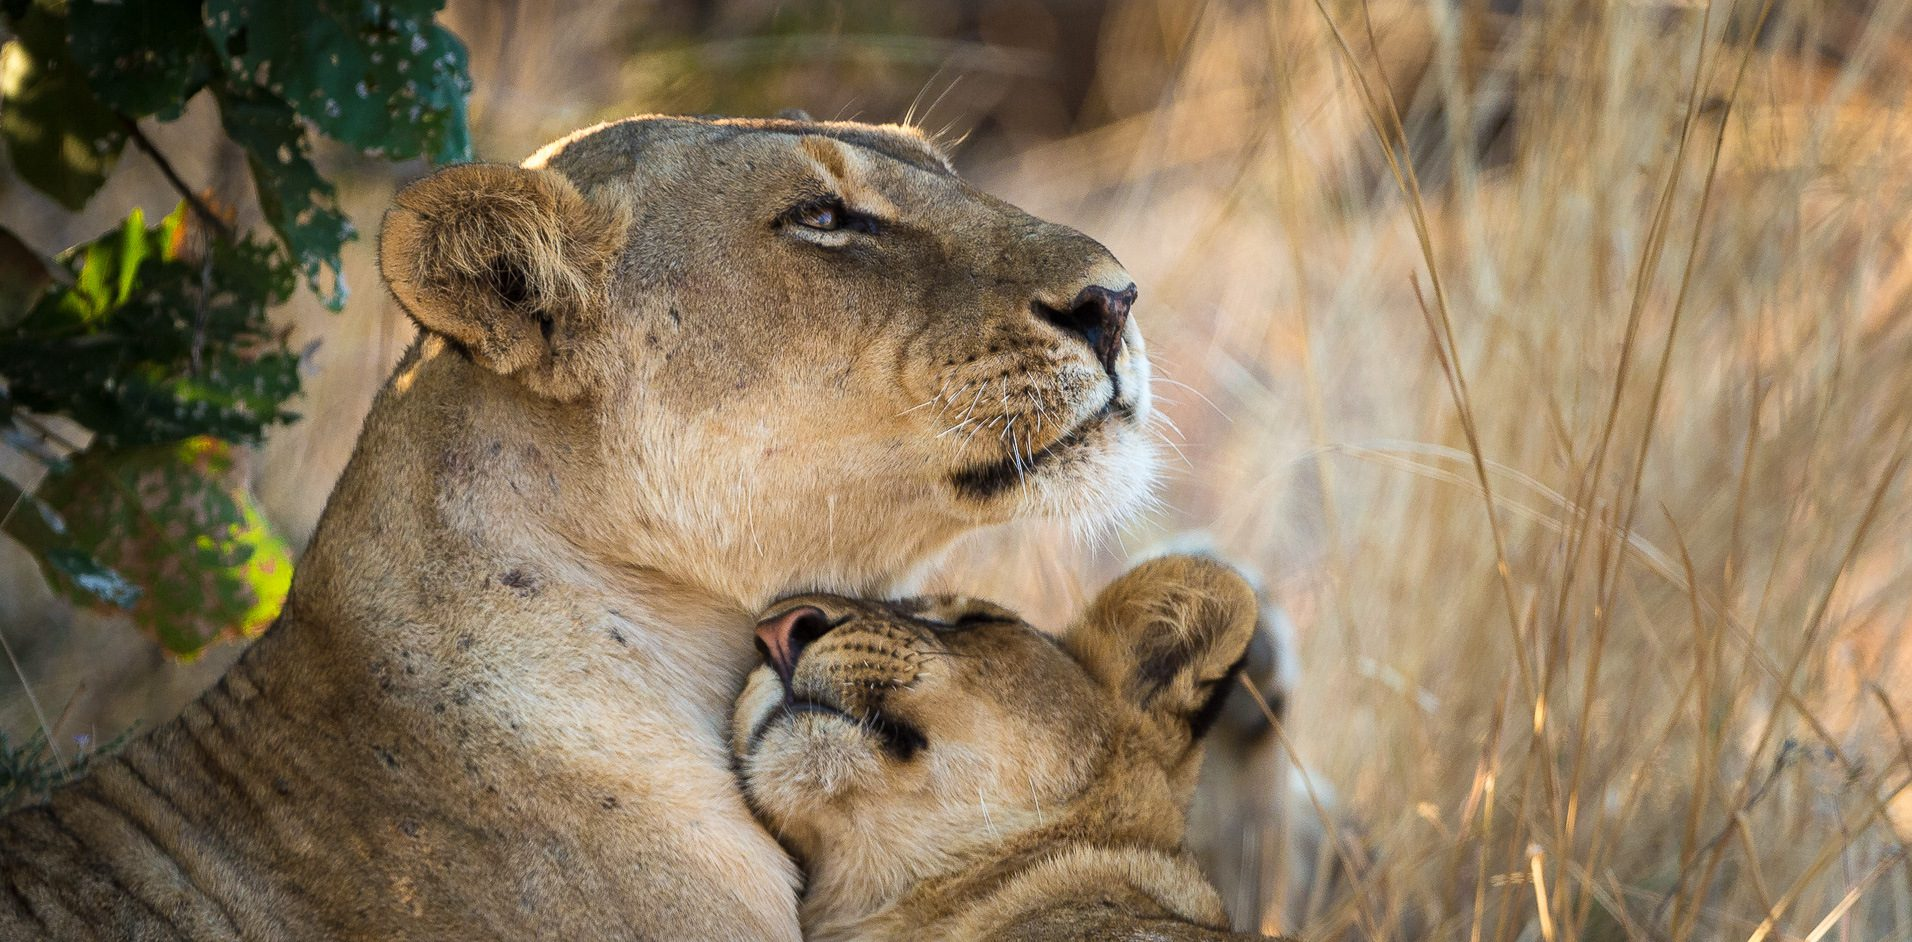 Lioness nestling each other in the plains